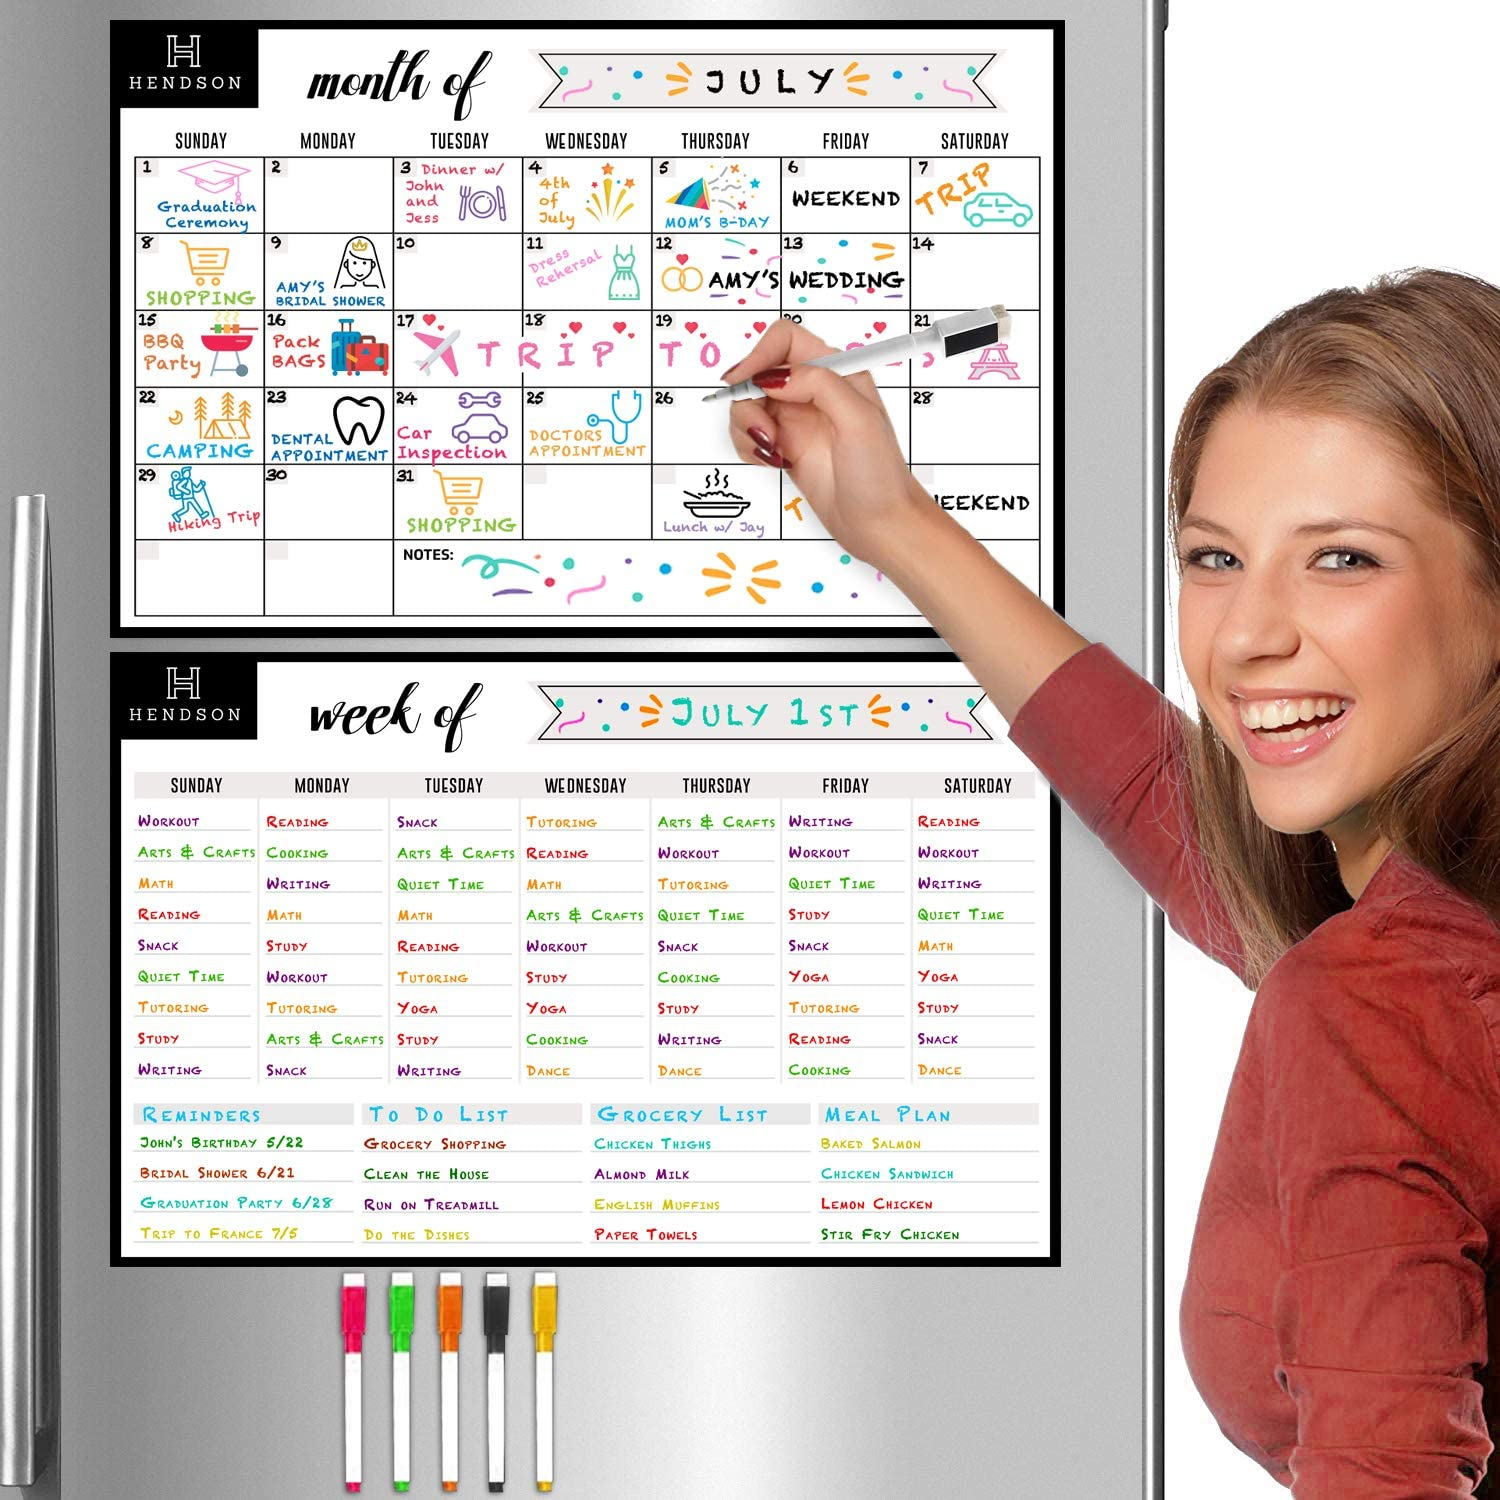 "Magnetic Dry Erase Monthly Calendar and Weekly Planner White Board Set for Kitchen Fridge – Set of Two 11"" x 17"" Multipurpose Stain Resistant Whiteboard Refrigerator Organizer Reusable Magnet Boards"